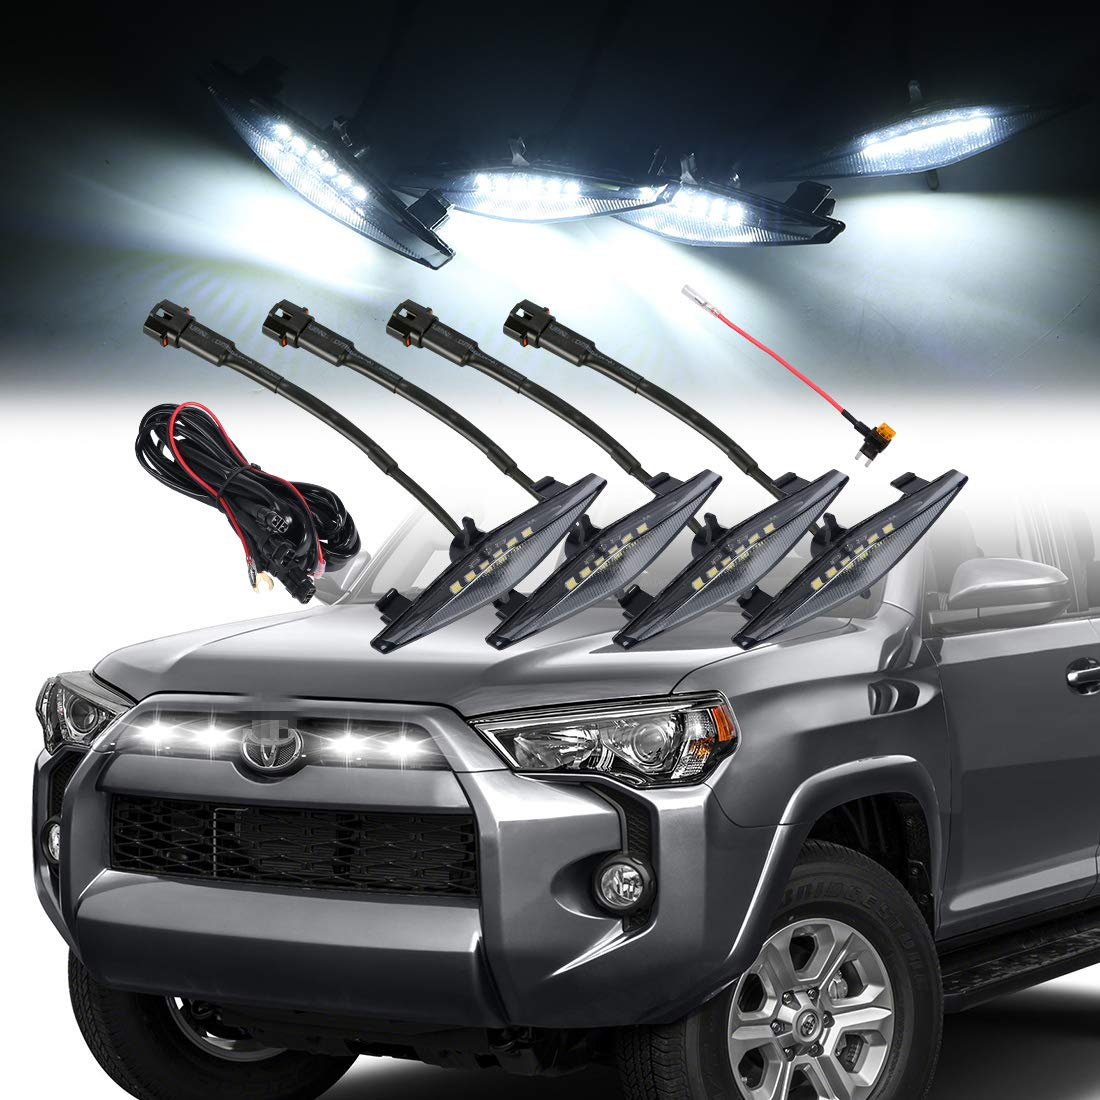 Including SR5 TRO Pro (Smoked shell white lights) TRD off-road Limited 4 PCS Led Smoked Grille Lights Kits for Toyota 4Runner TRD Pro 2014-2019